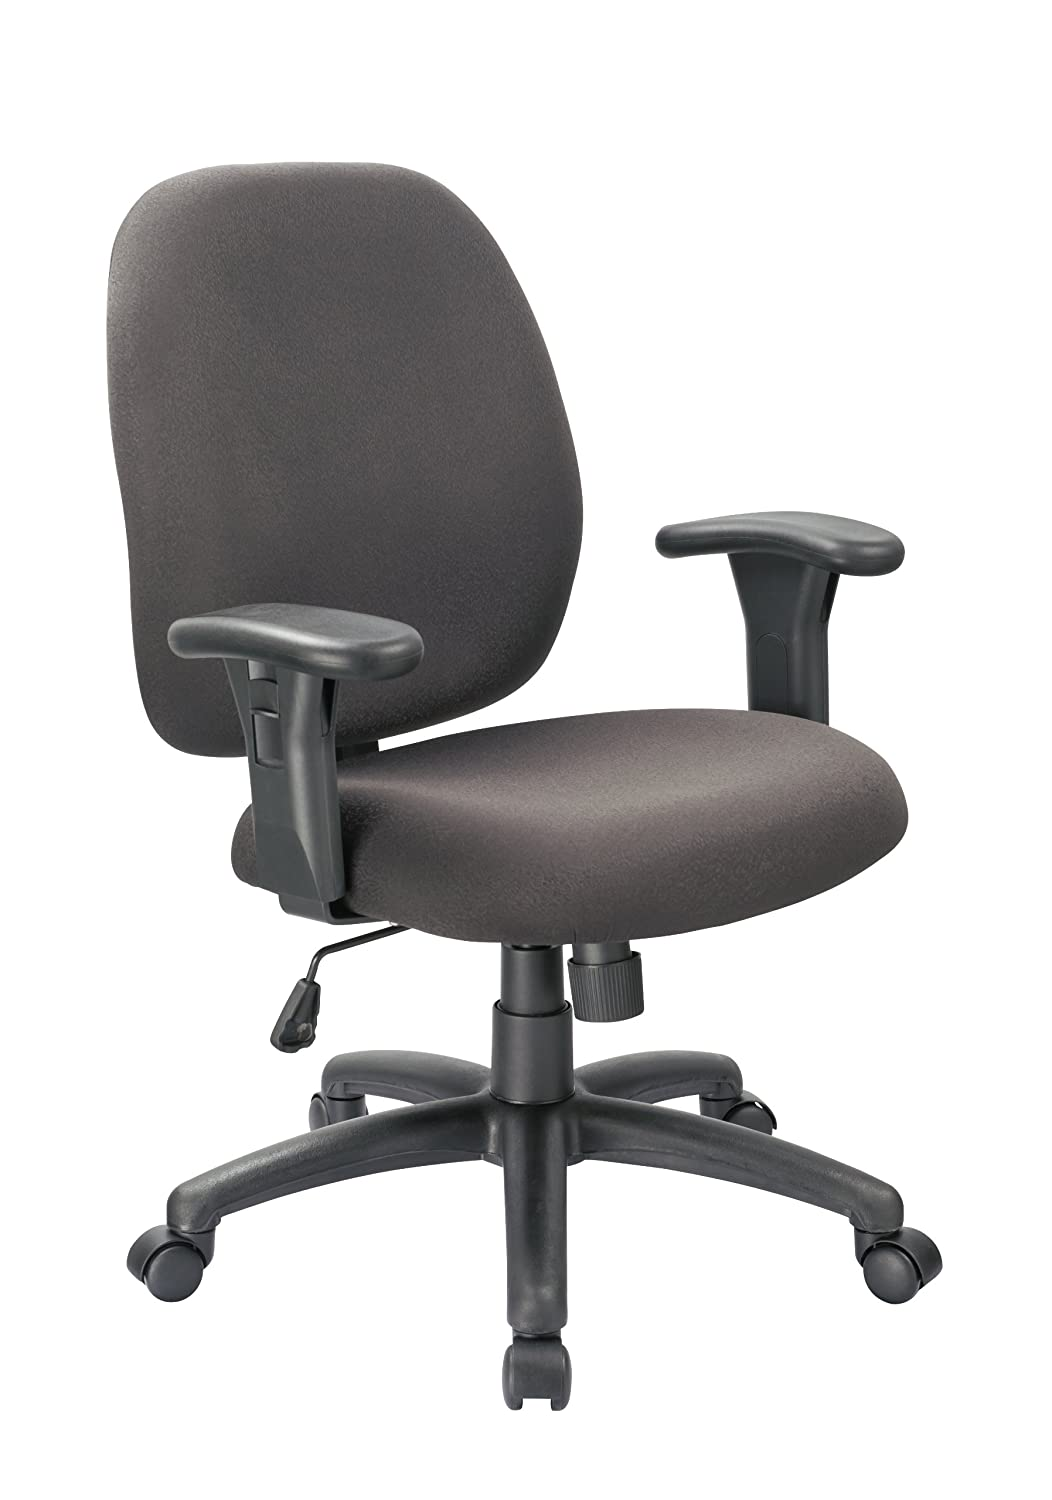 Marvelous Office Factor Black Task Office Chair Swivel Adjustable Arms Rest Lumbar Support Durable Commercial Grade Fabric 250 Lbs Weight Capacity Dailytribune Chair Design For Home Dailytribuneorg